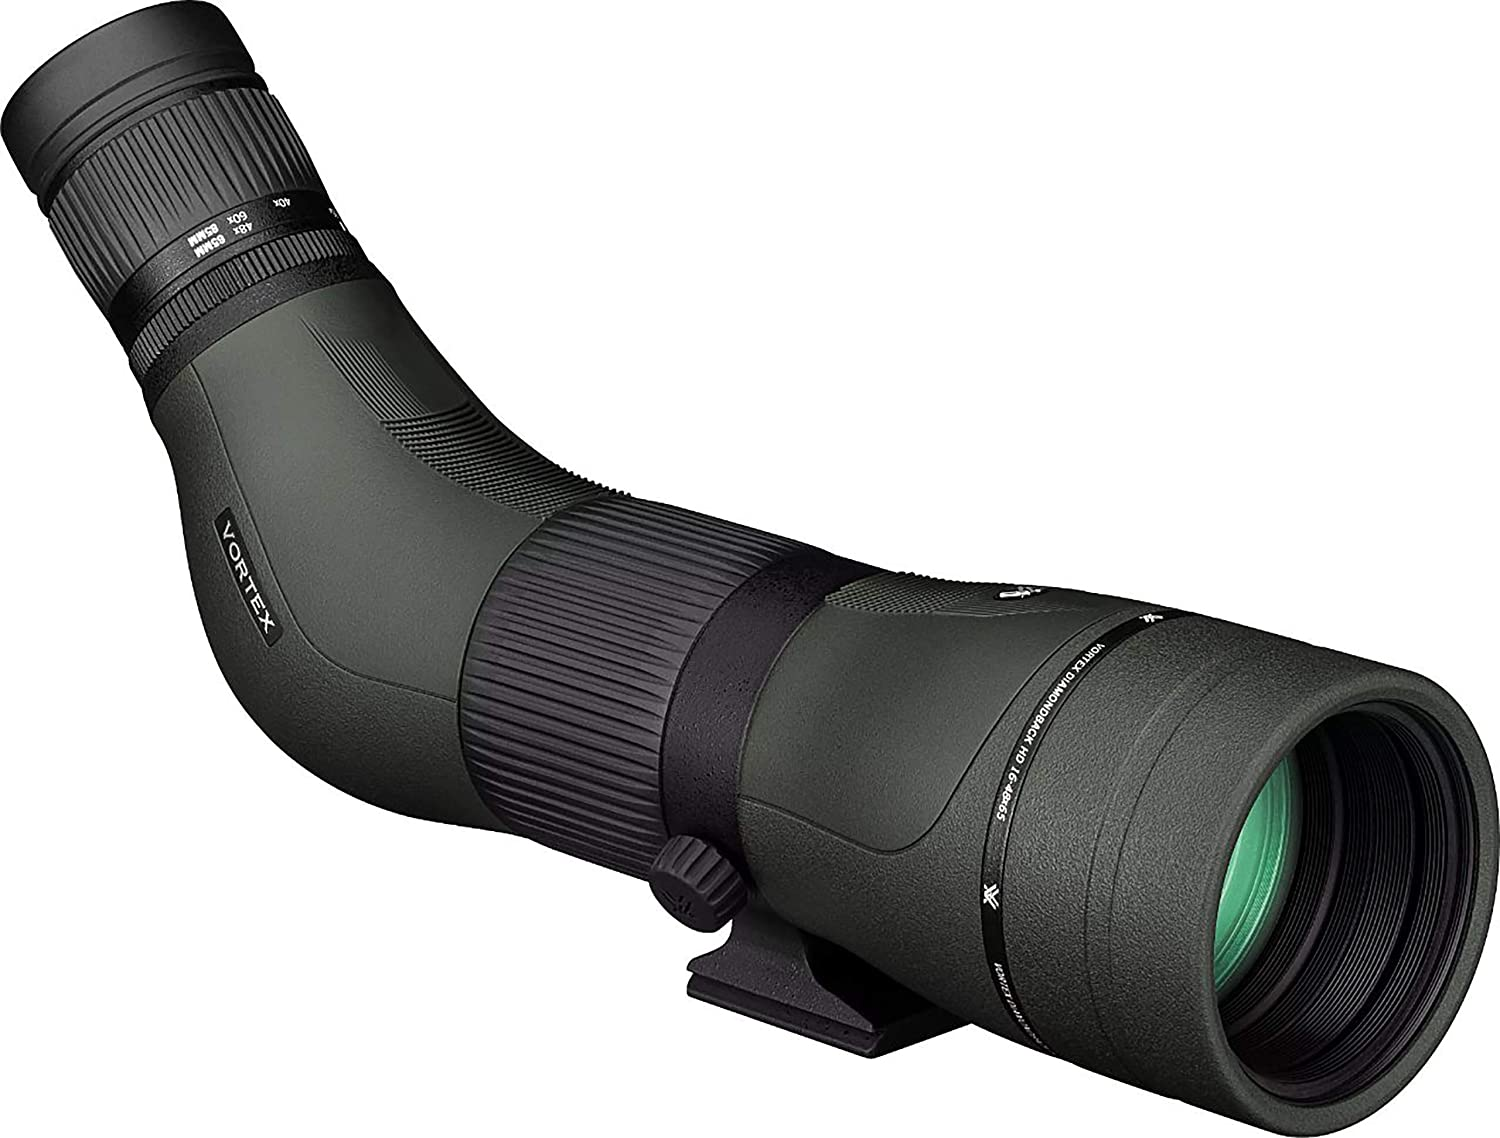 Top 9 Best Spotting Scopes For Wildlife Viewing [Buying Guide - 2021] 7